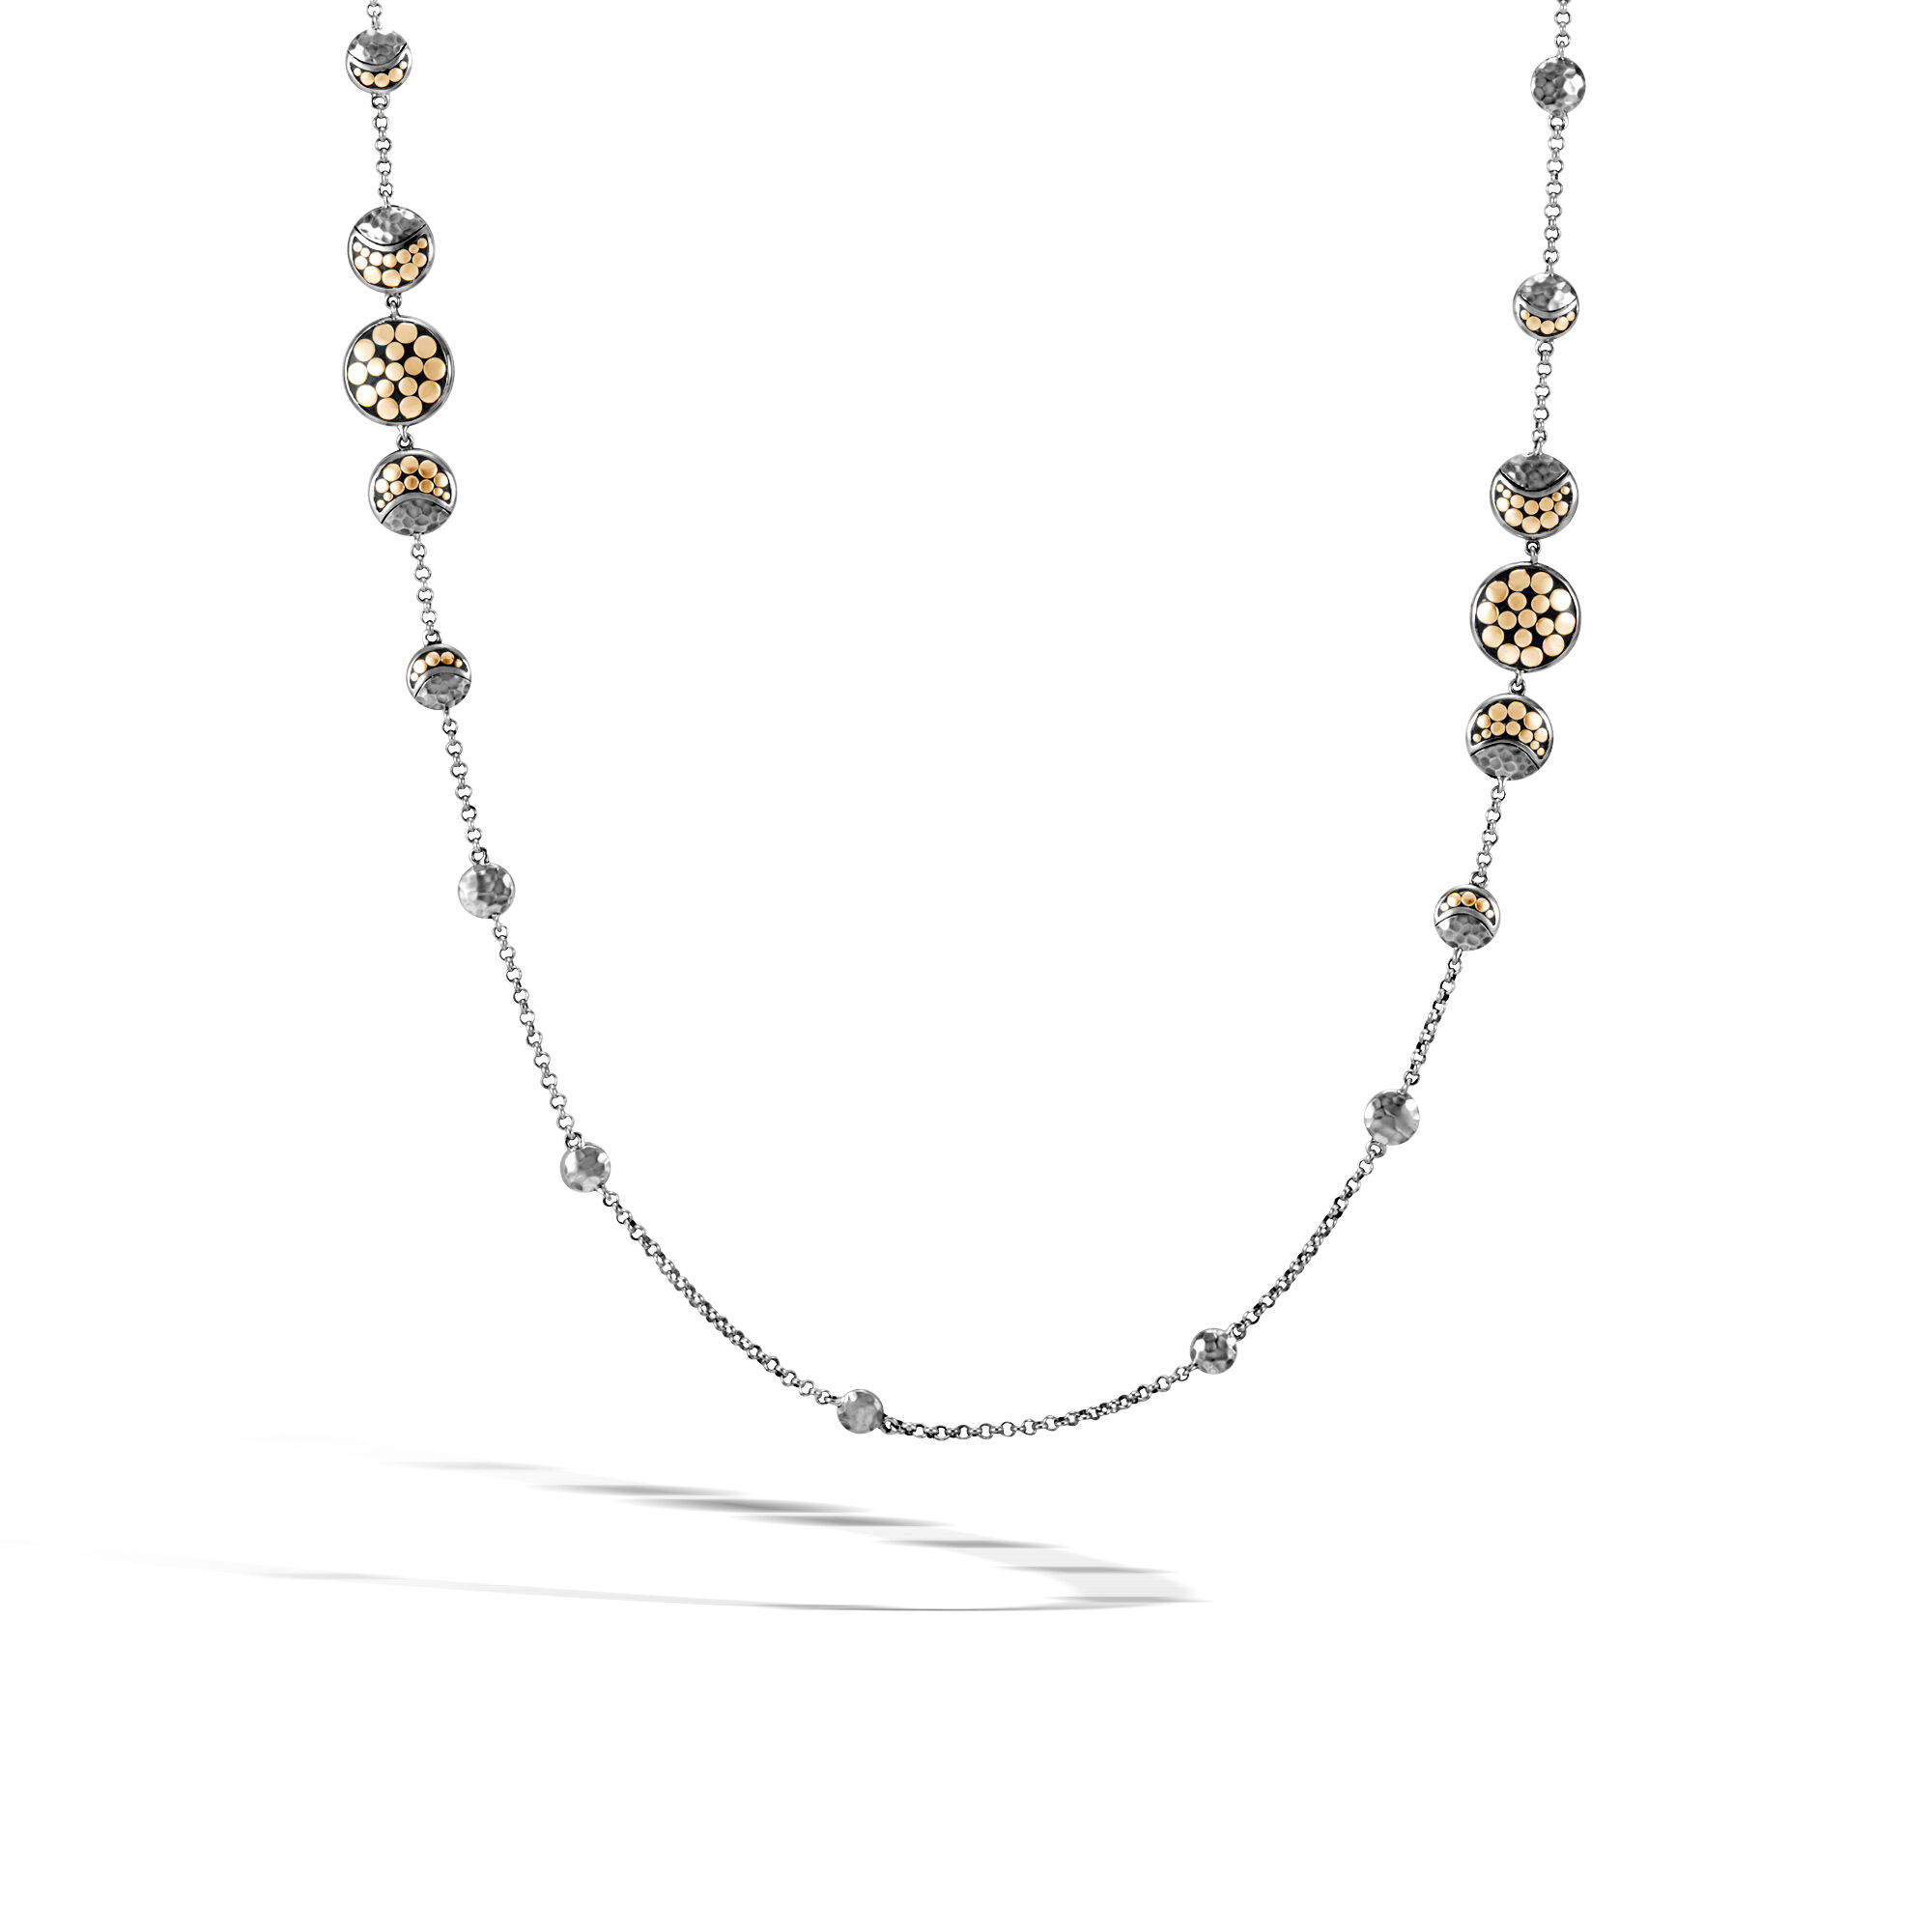 John Hardy Dot Hammered Silver Moon Phase Station Necklace, 36